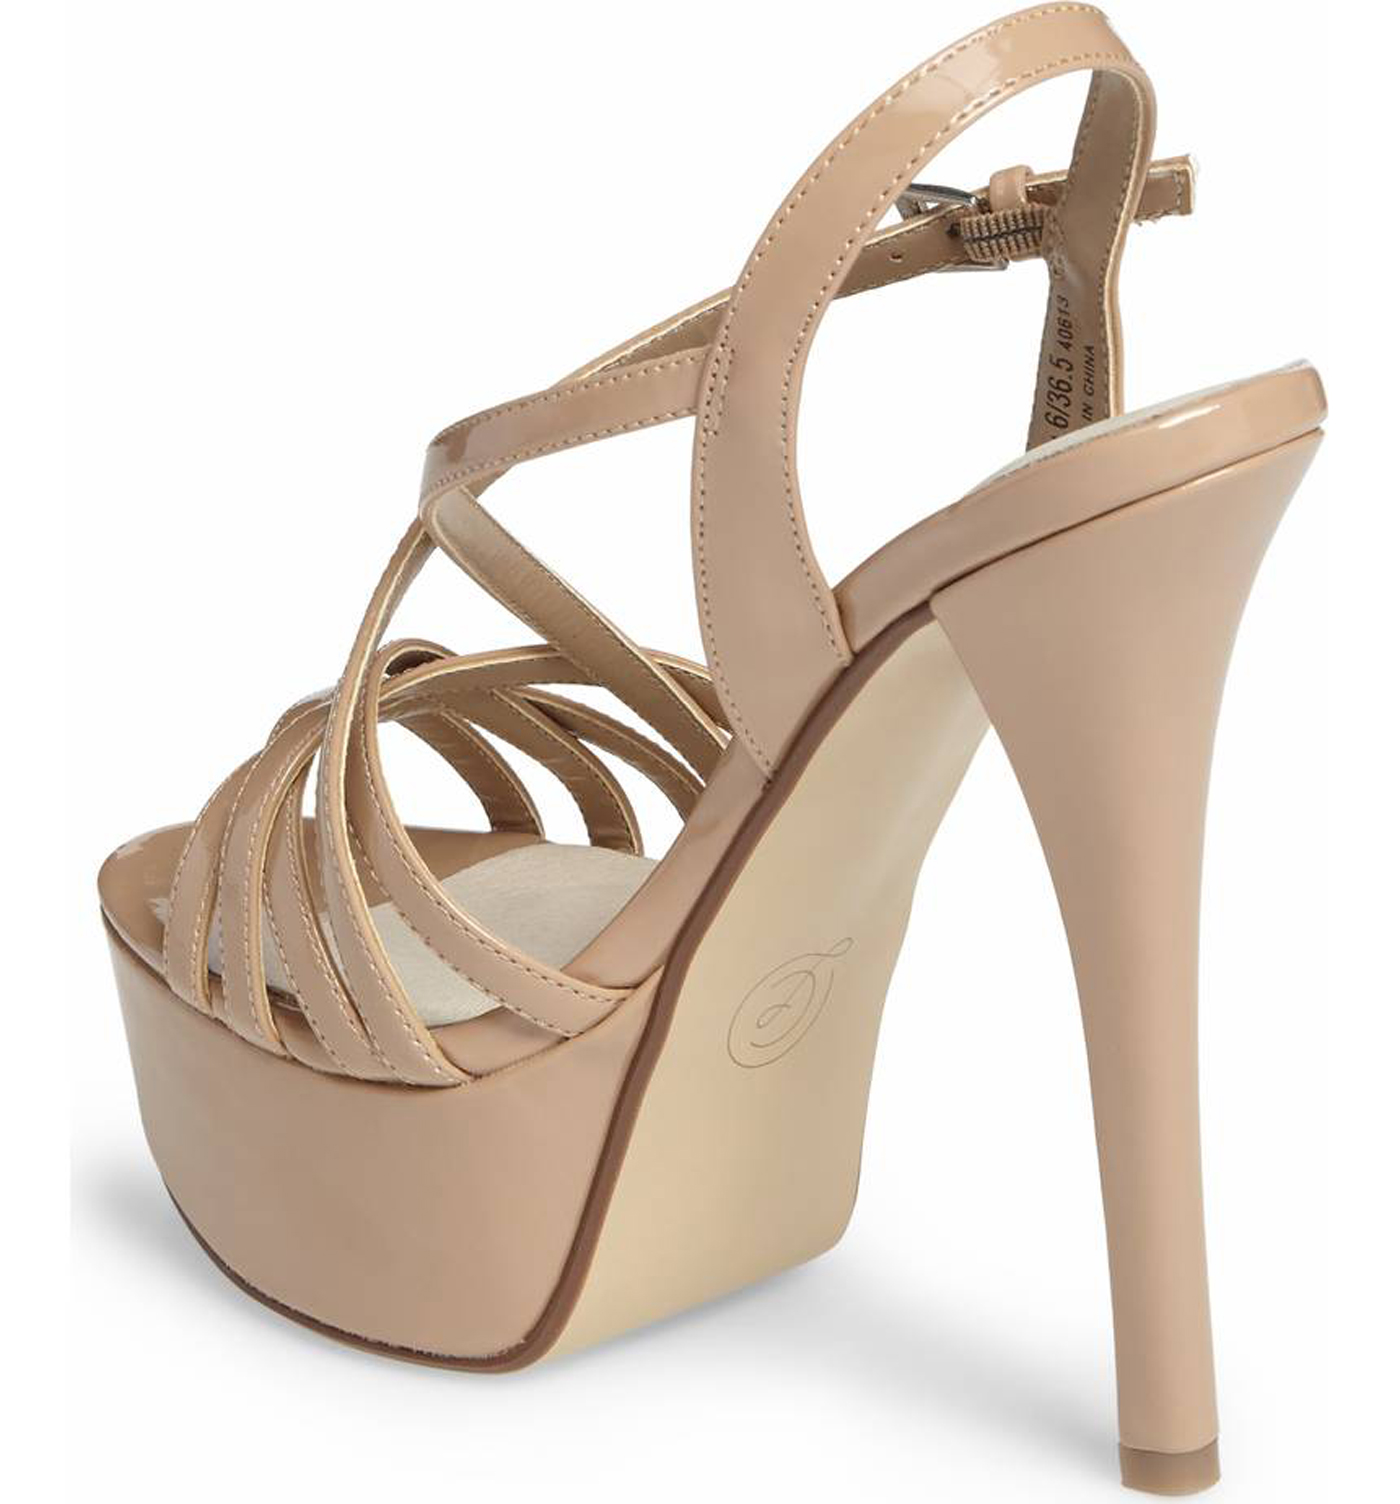 chinese laundry teaser platform dress sandal nude patent super high